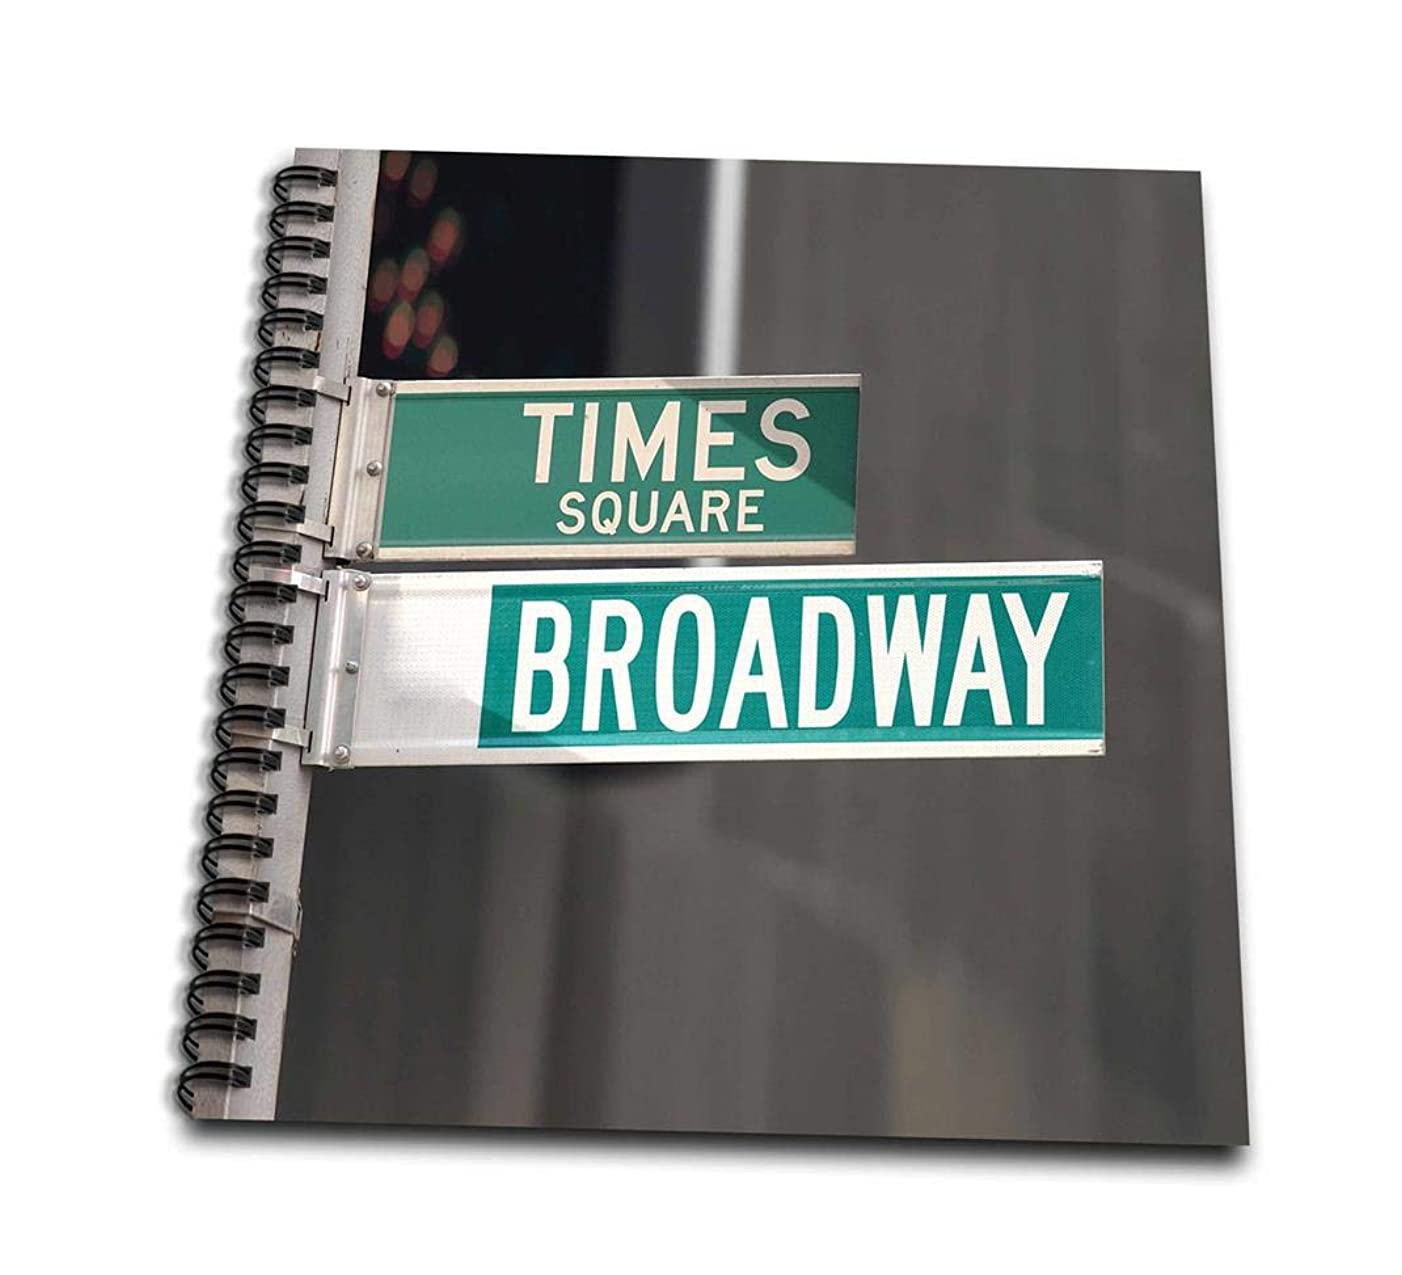 3dRose db_4393_2 Times Square Broadway-Memory Book, 12 by 12-Inch